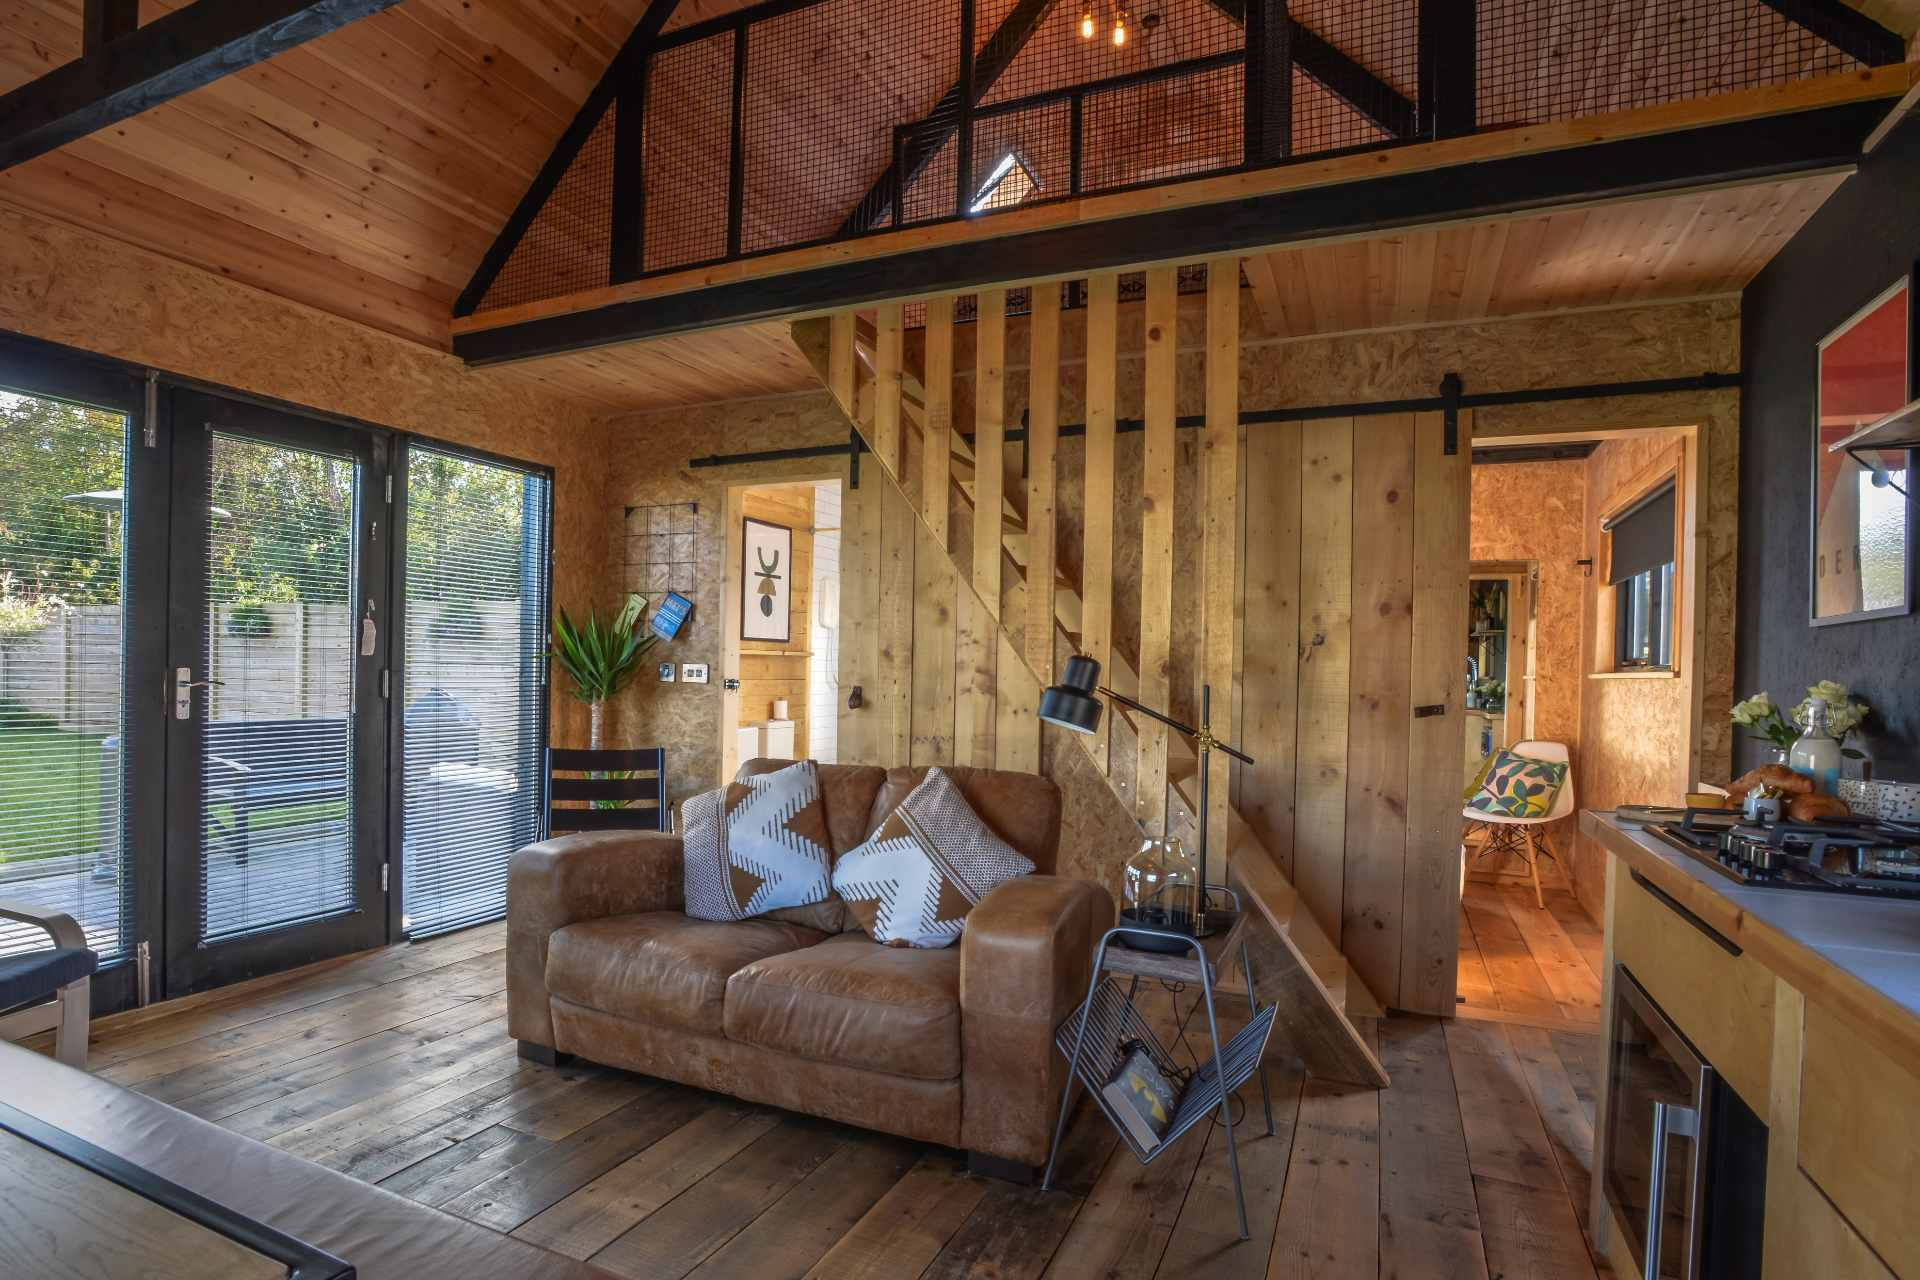 living-space-of-wooden-cabin-the-black-shack-bancran-school-tiny-house-glamping-northern-ireland